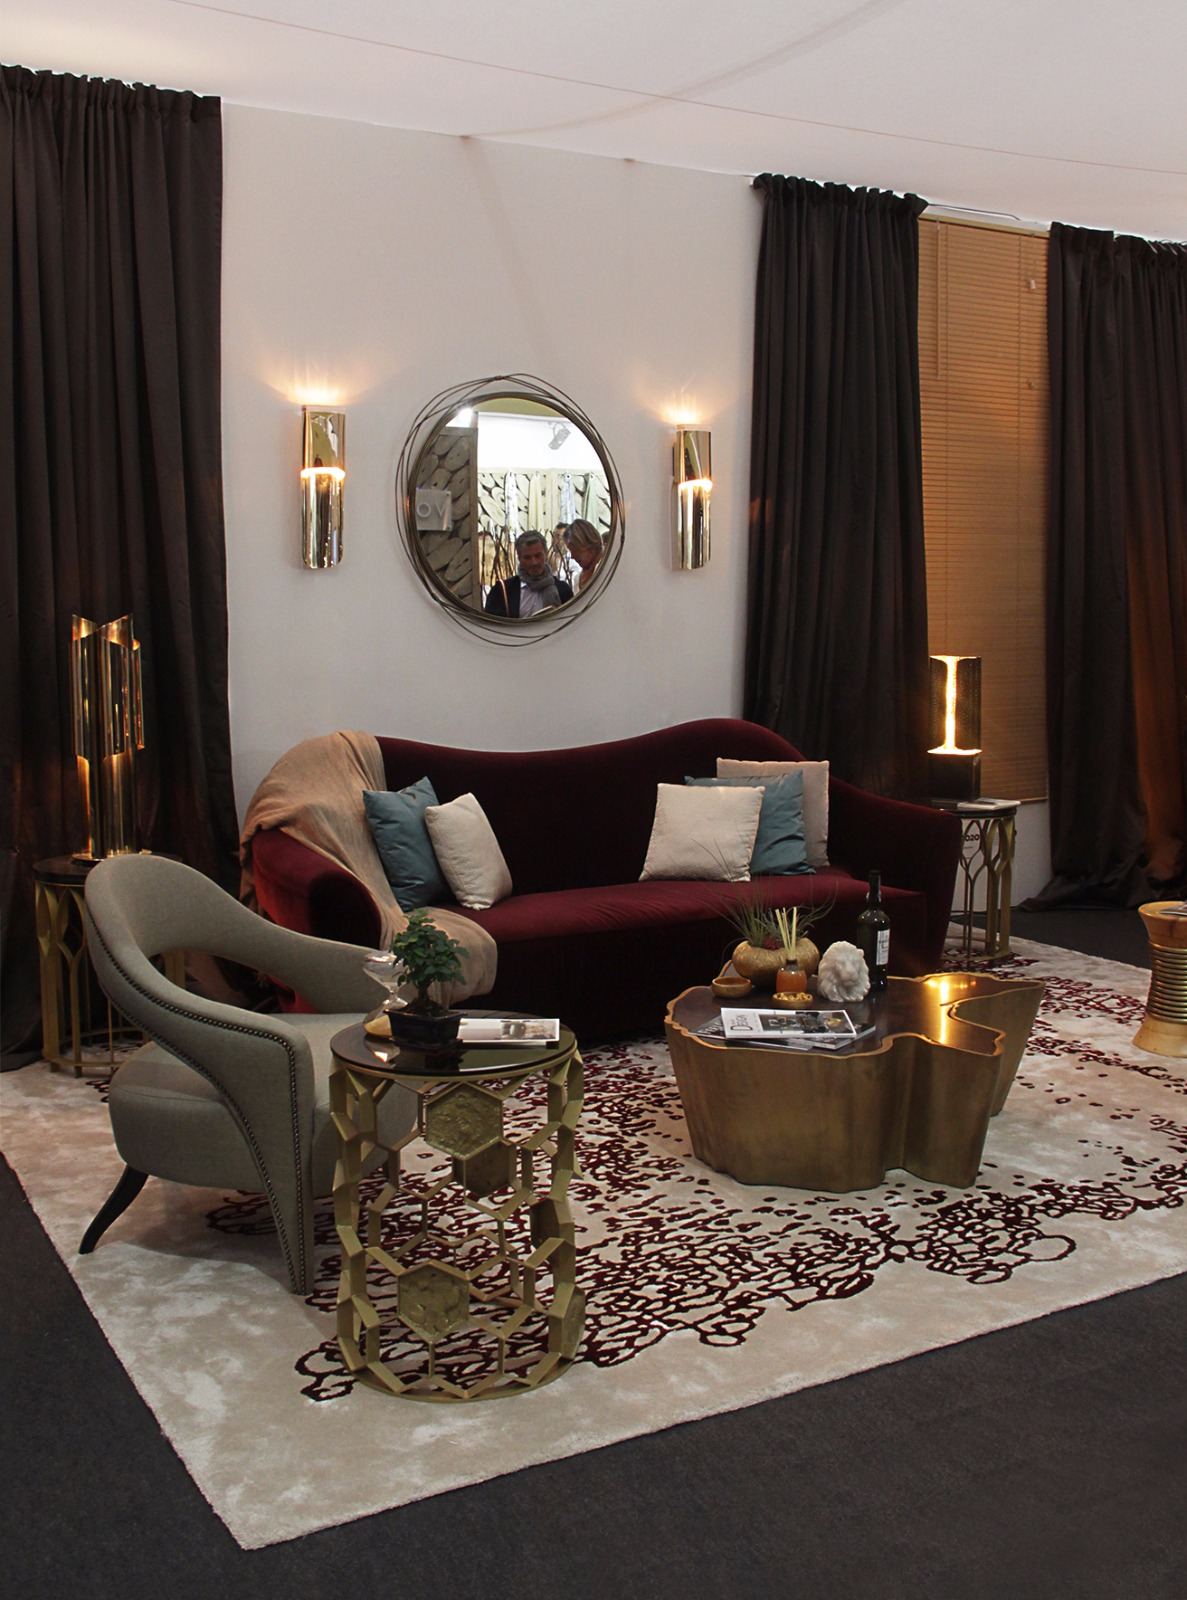 BRABBU living room set at Decorex International 2016  decorex international 2016 Get Inside Decorex International 2016: Take the First Look Get Inside Decorex International 2016 Take the First Look 1